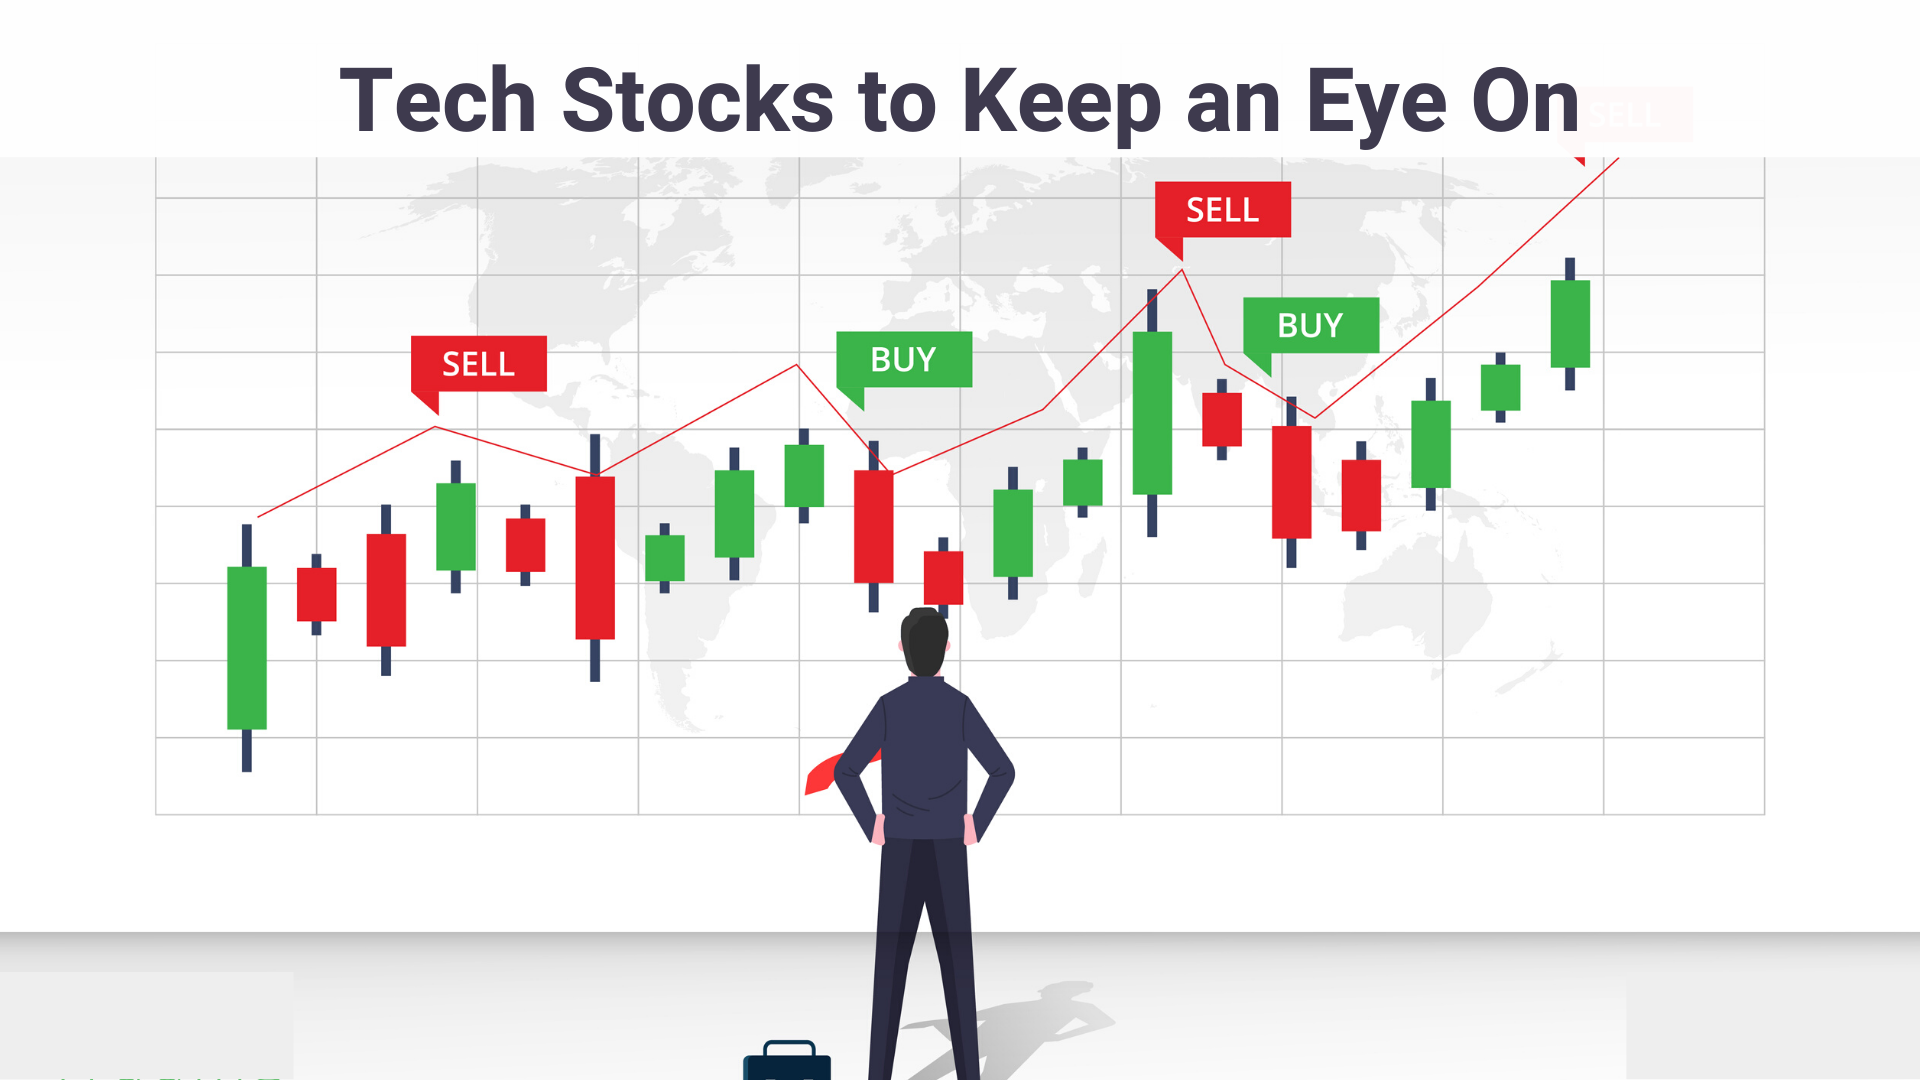 What are the Tech Stocks to Keep an Eye On ?